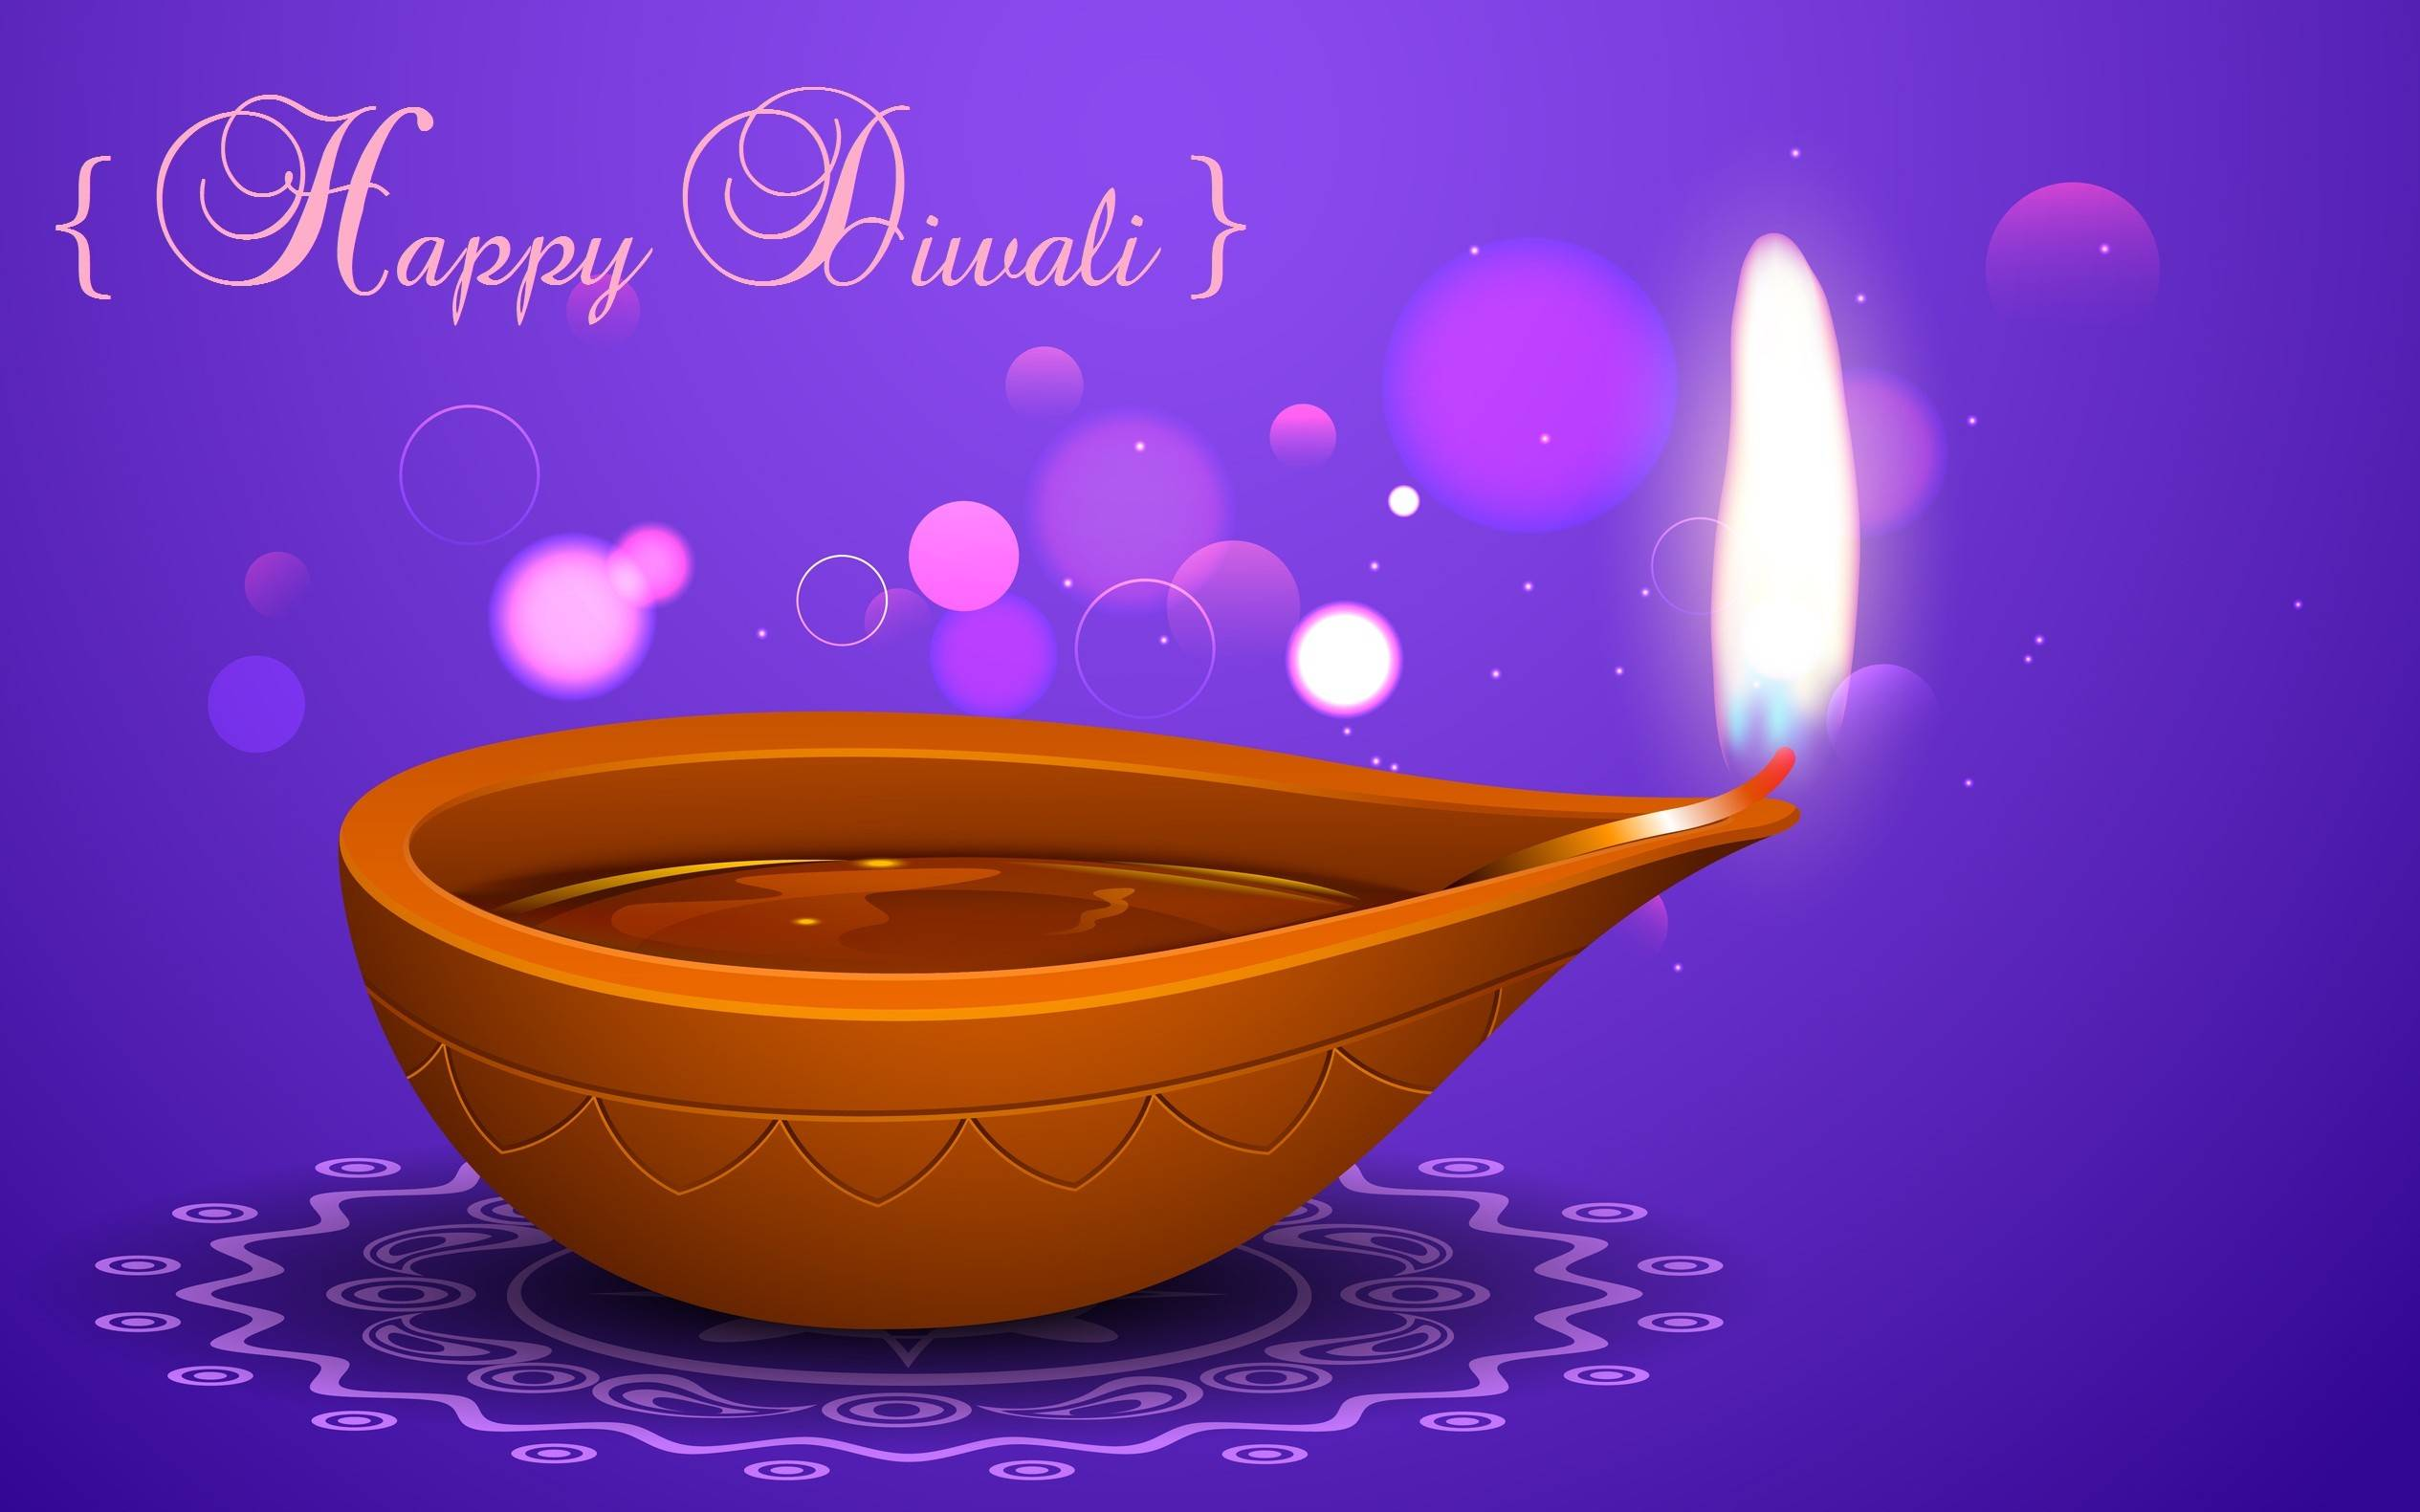 Wallpaper download diwali - Download